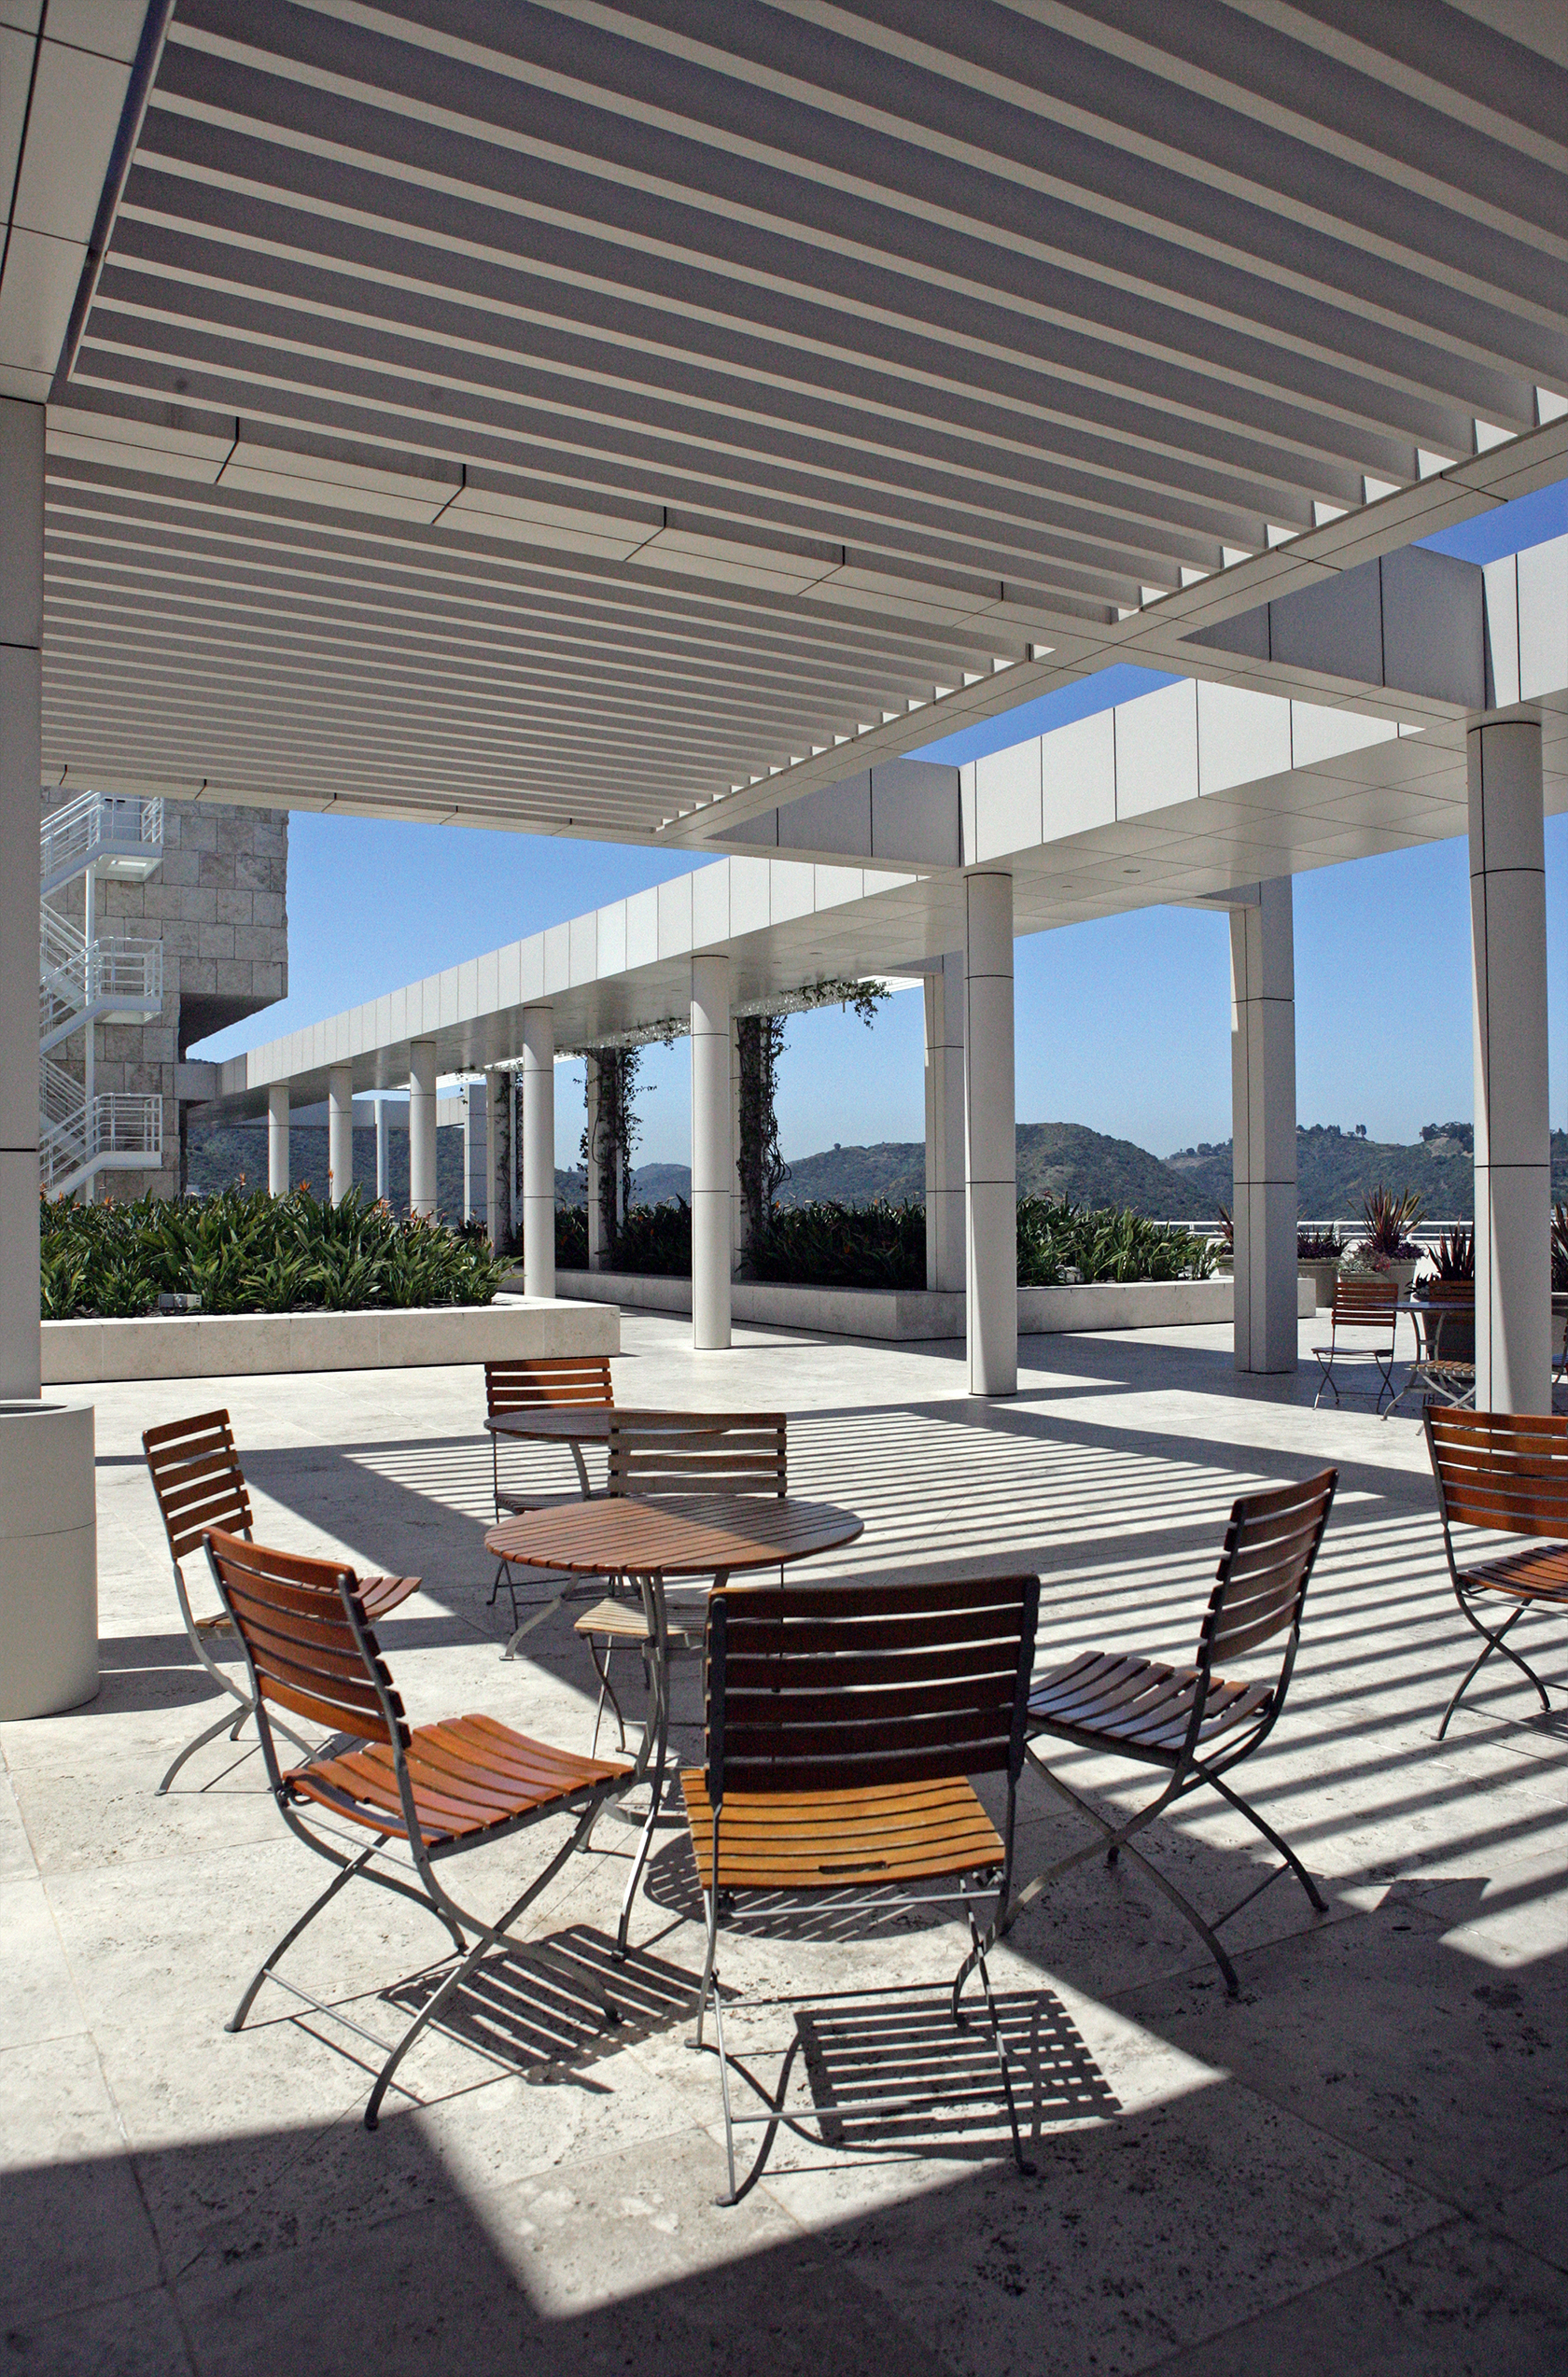 Getty Patio YE7J5522sized.jpg